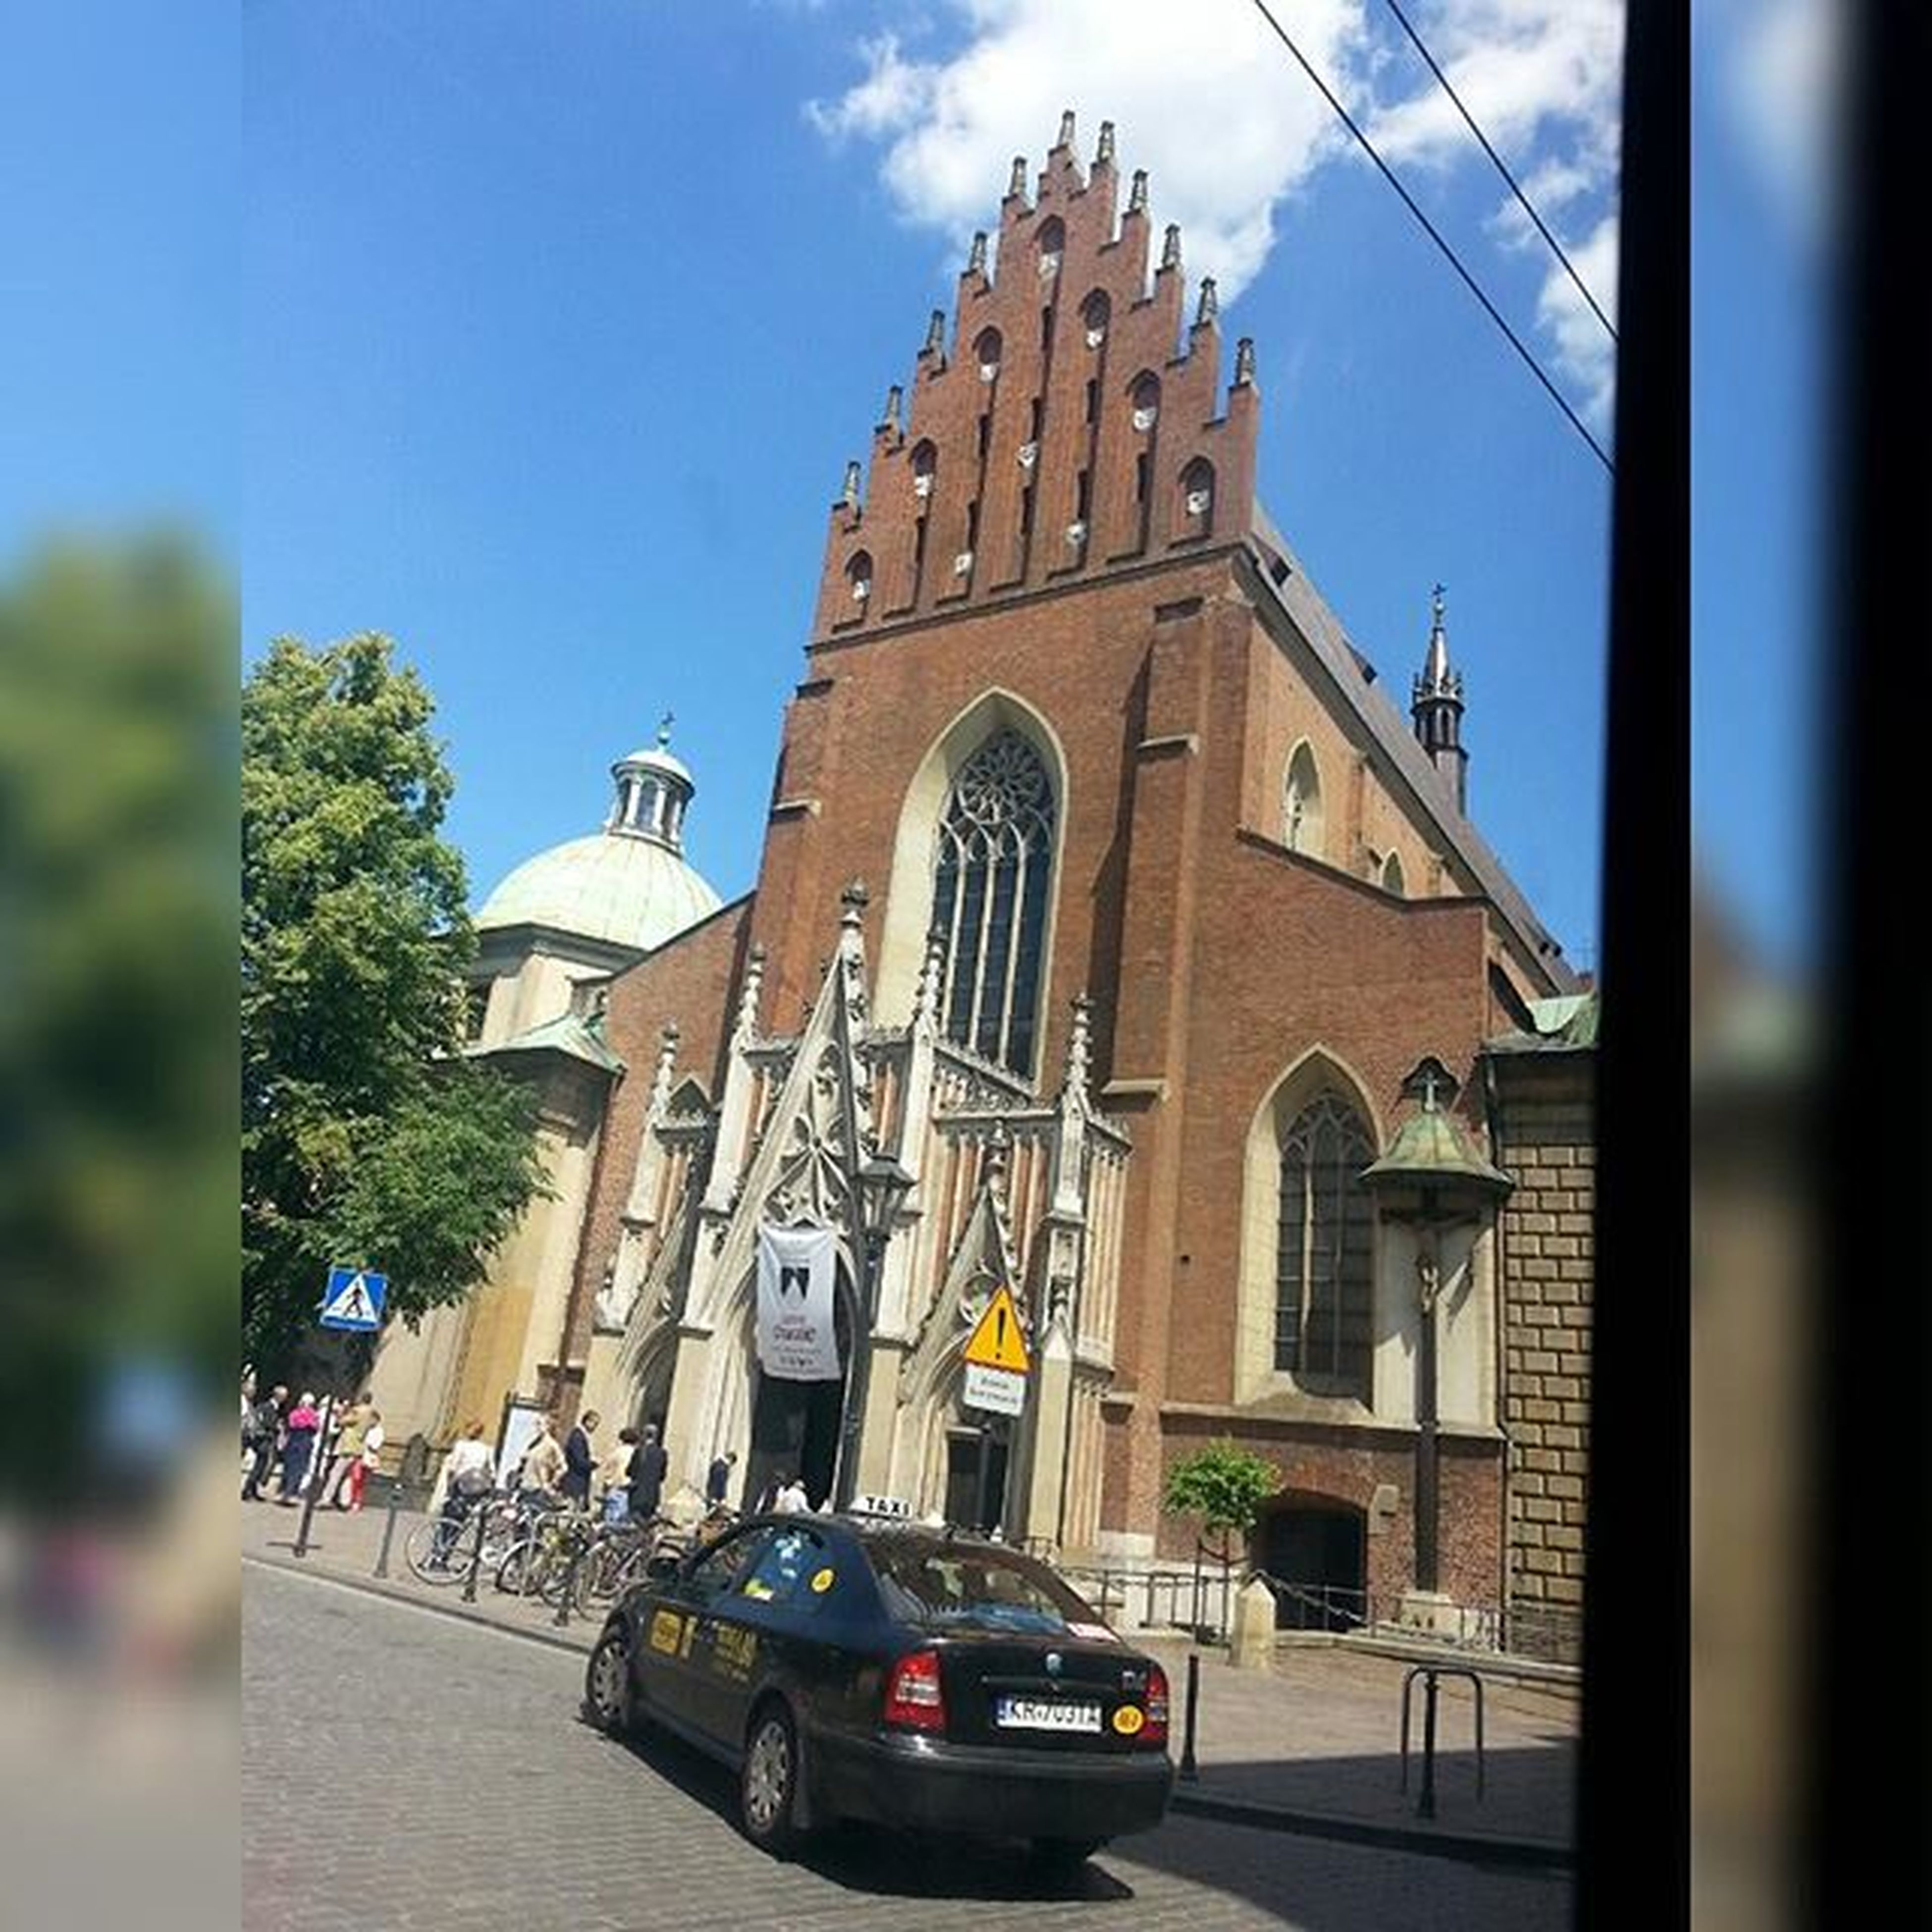 building exterior, architecture, built structure, church, religion, sky, place of worship, spirituality, city, low angle view, window, street, cathedral, car, day, facade, outdoors, transportation